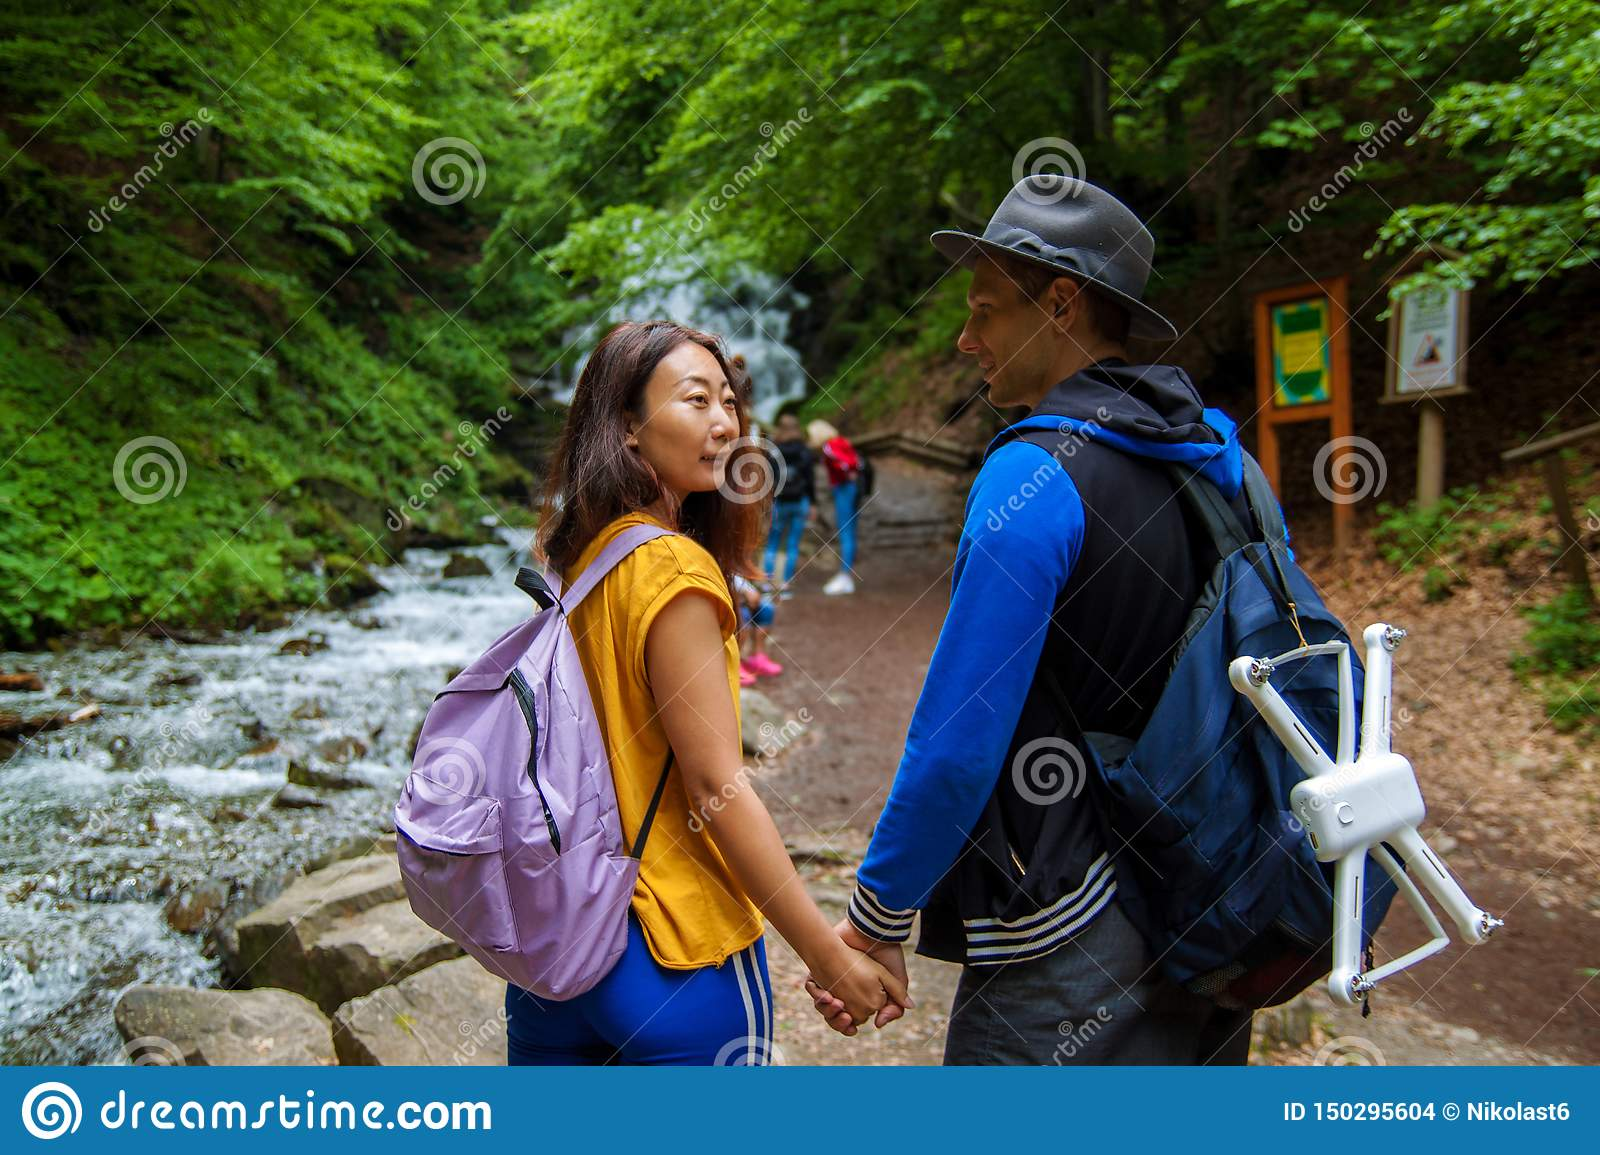 A young couple crossing a mountain stream while out walking together. Travelers stand near waterfalls.